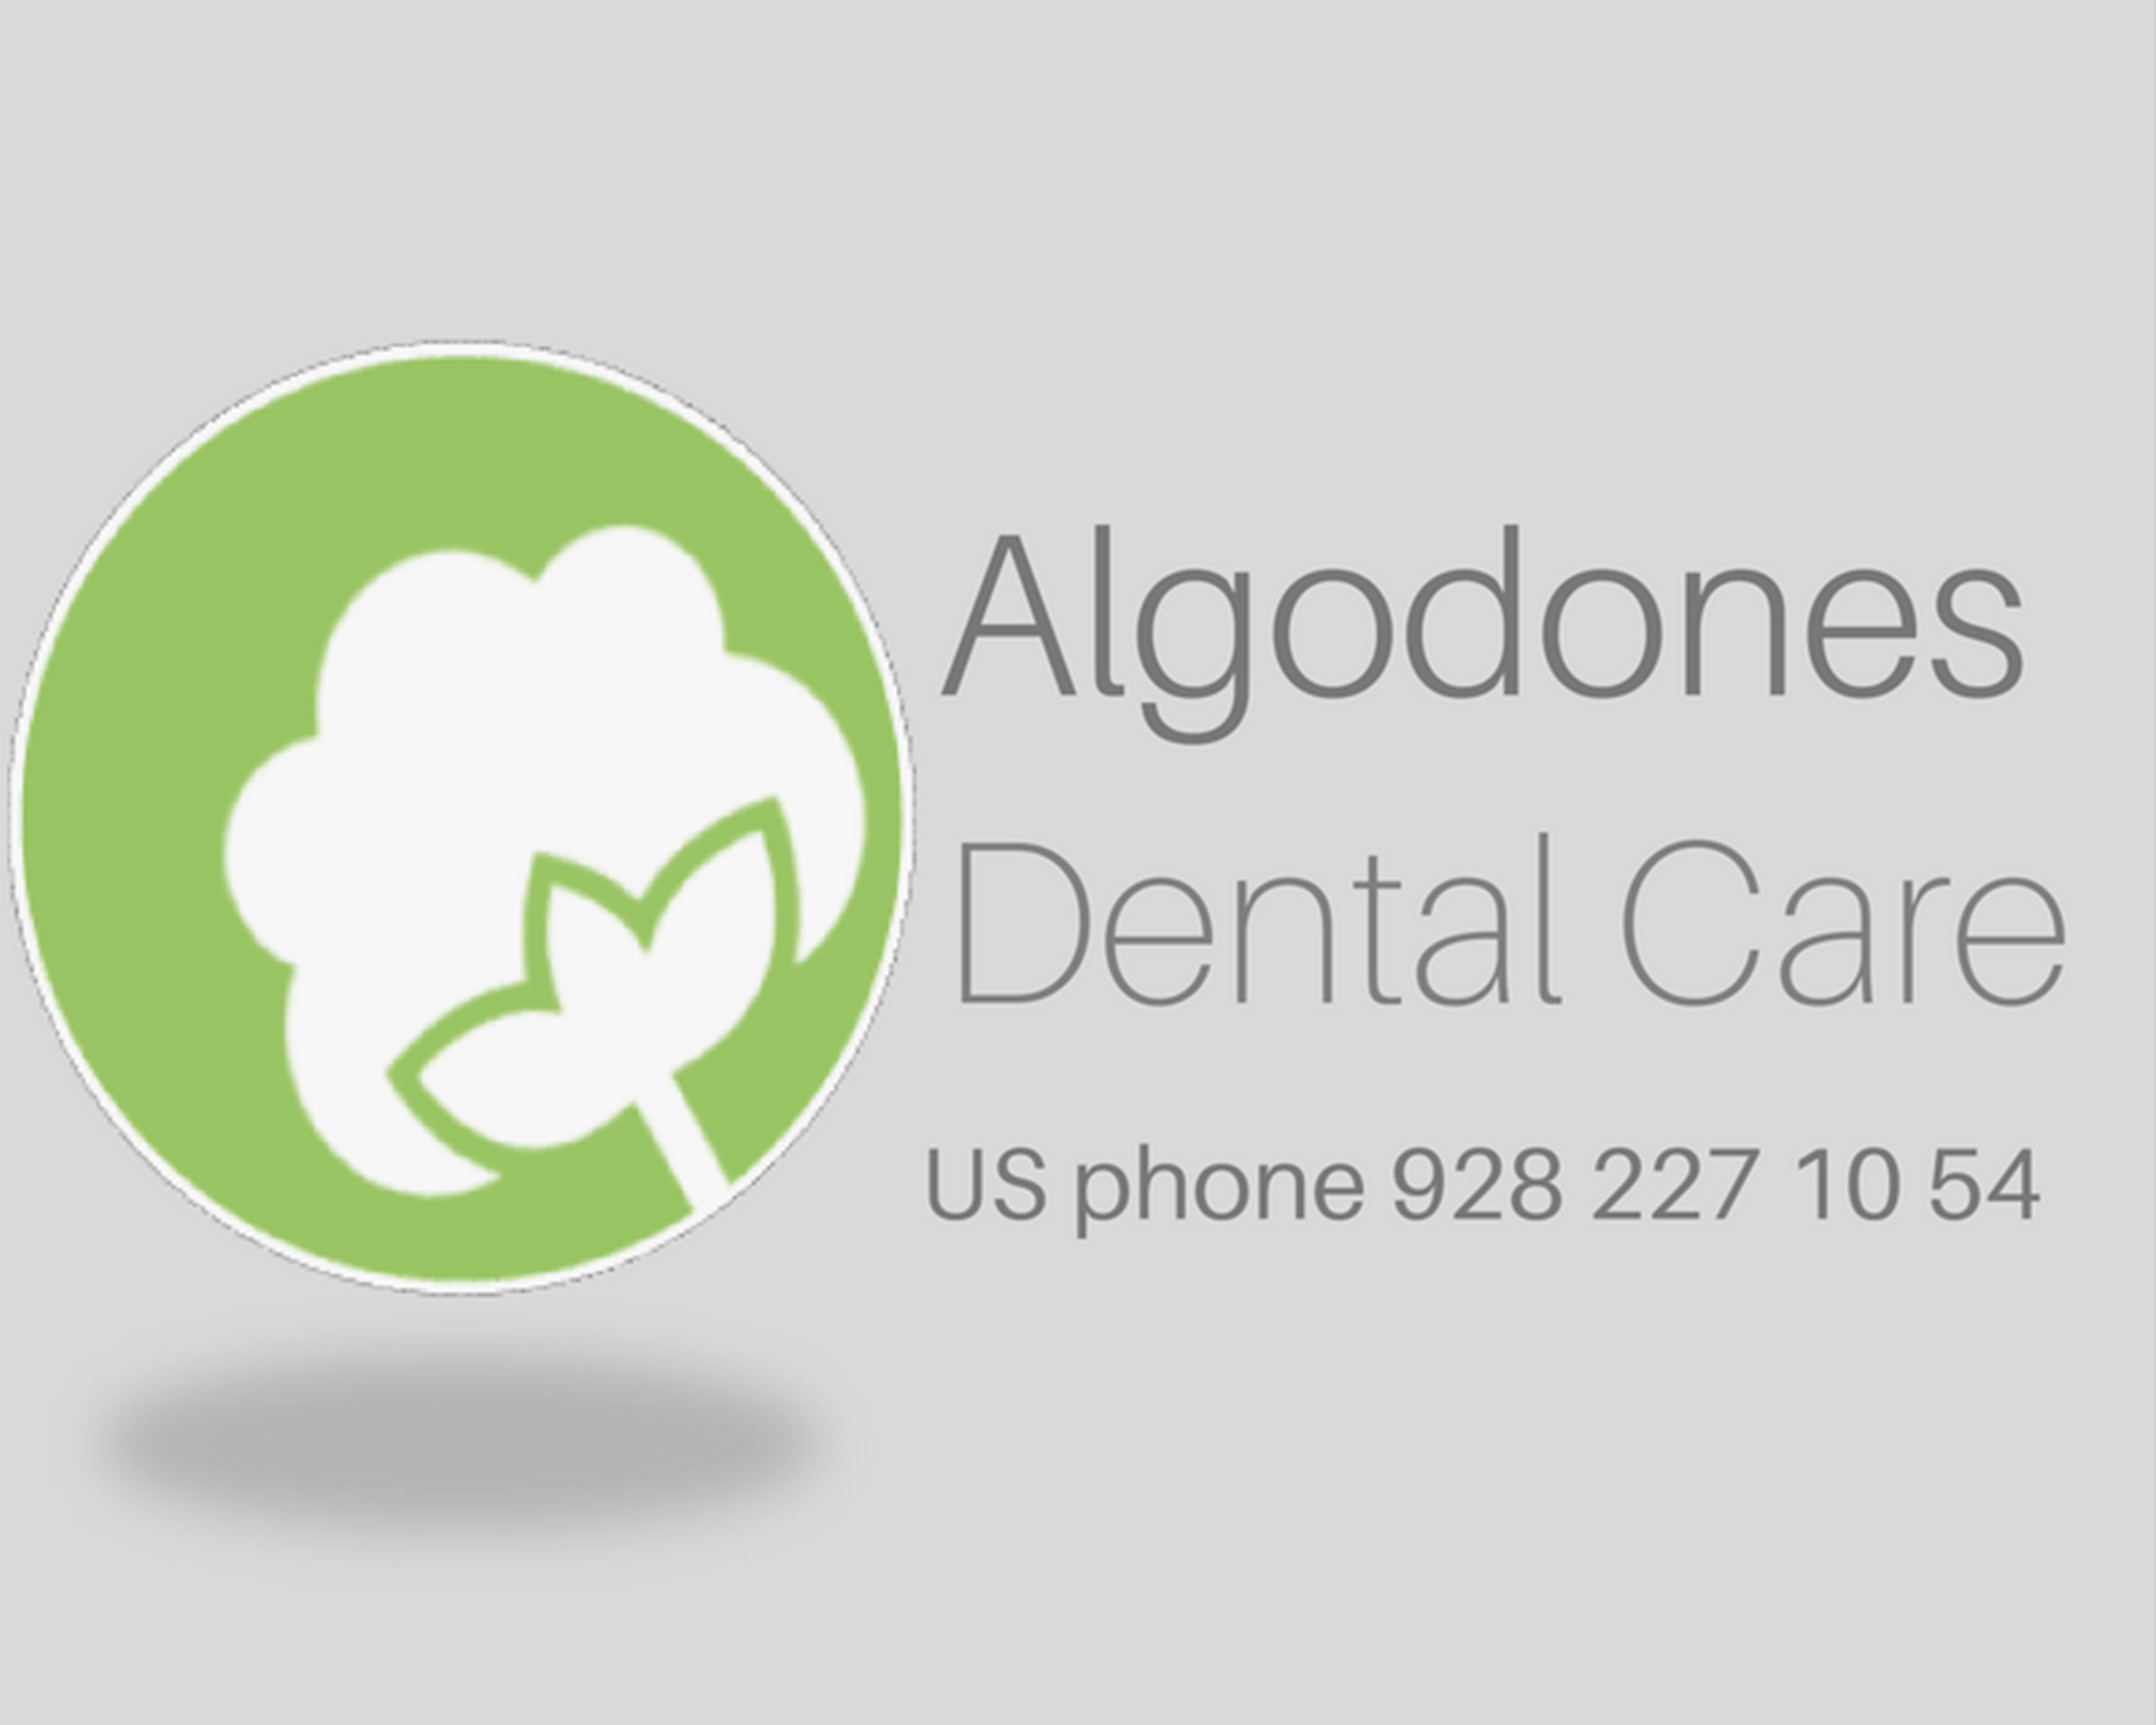 algodones dental care